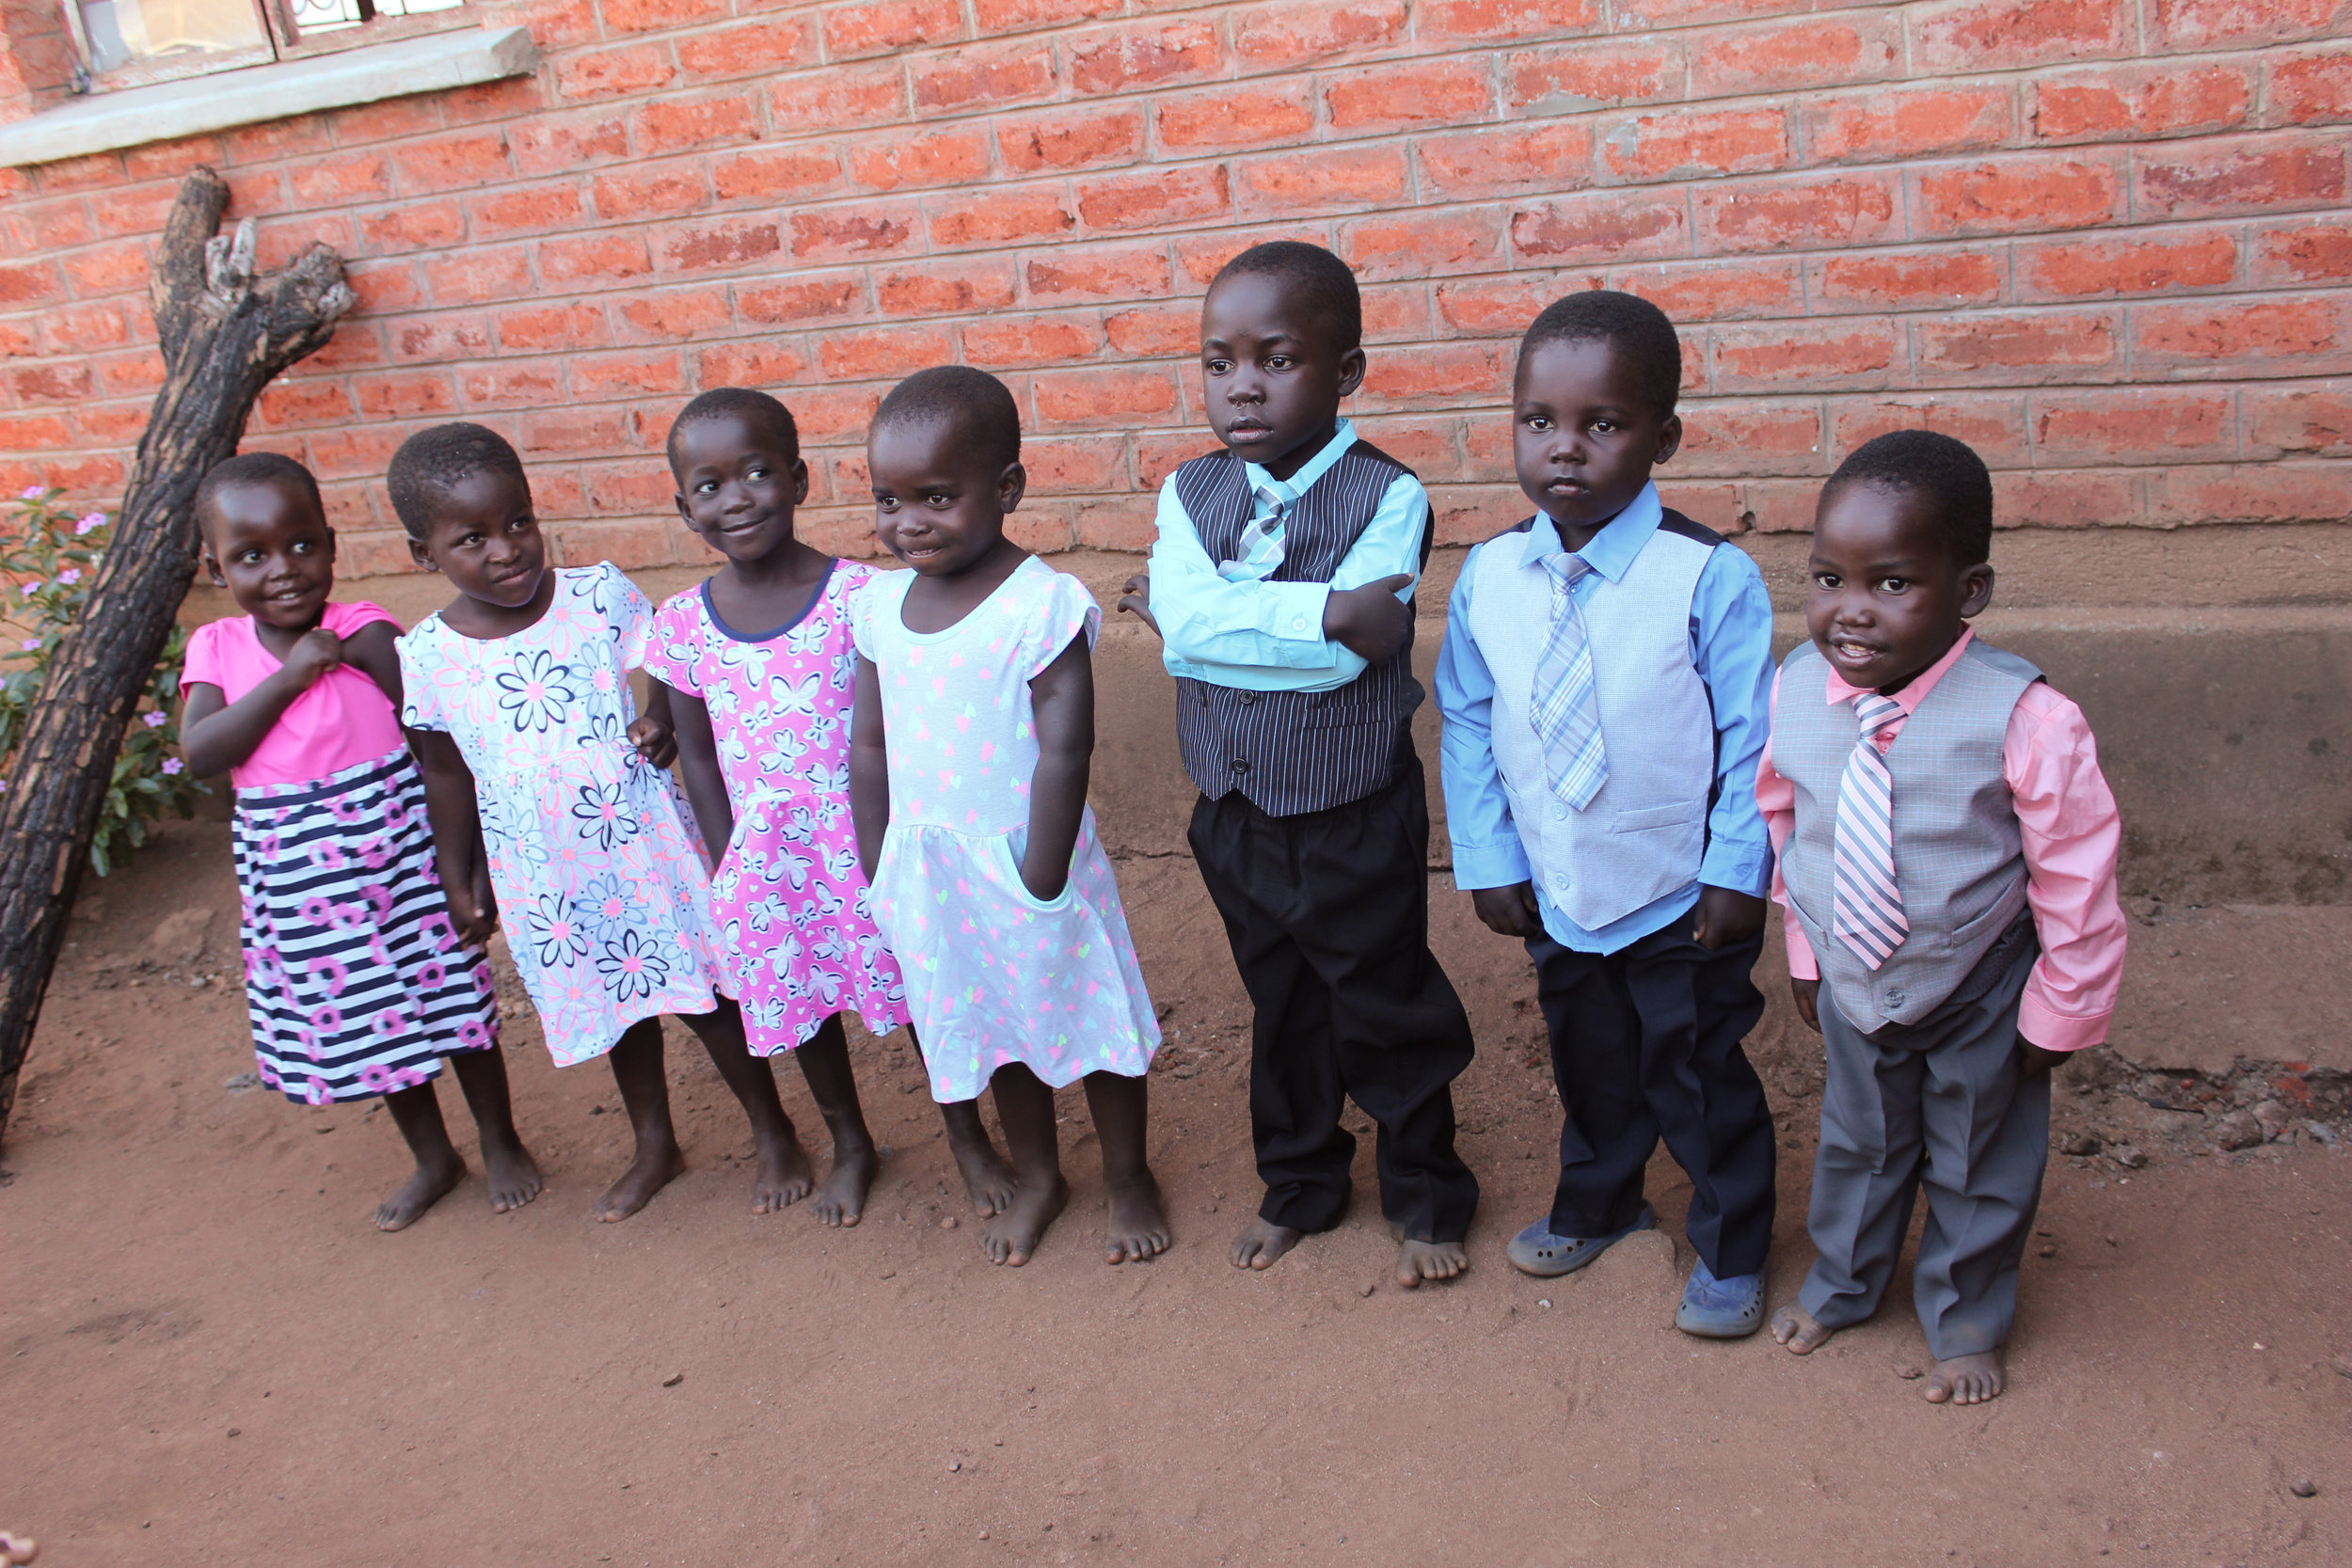 Dressed to the nines! From left to right: Leya, Janet, Esther C,, Esther J,, Laban, Jachai and Timmy Too.